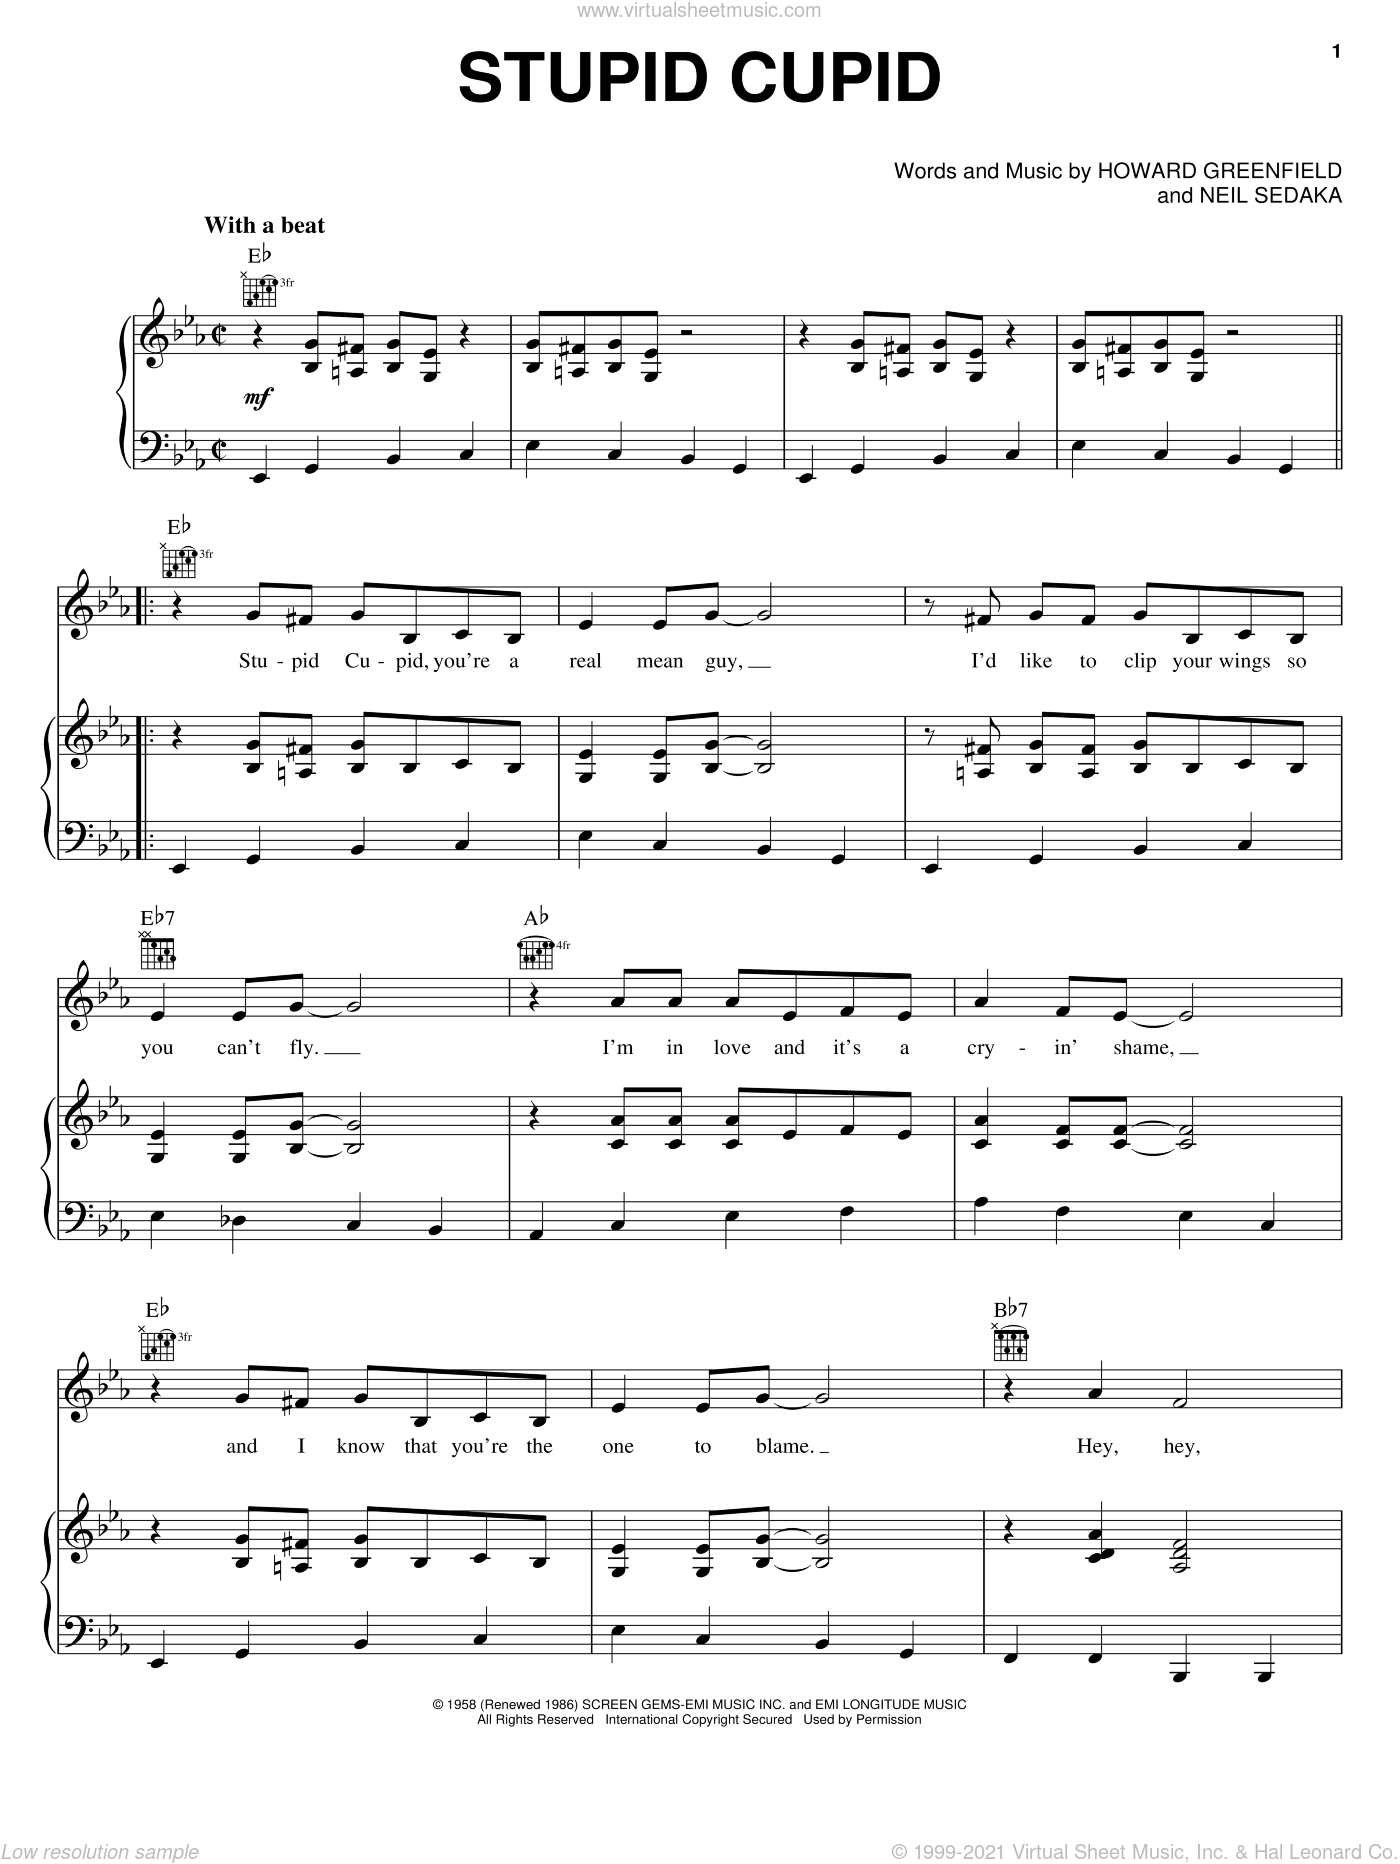 Stupid Cupid sheet music for voice, piano or guitar by Neil Sedaka